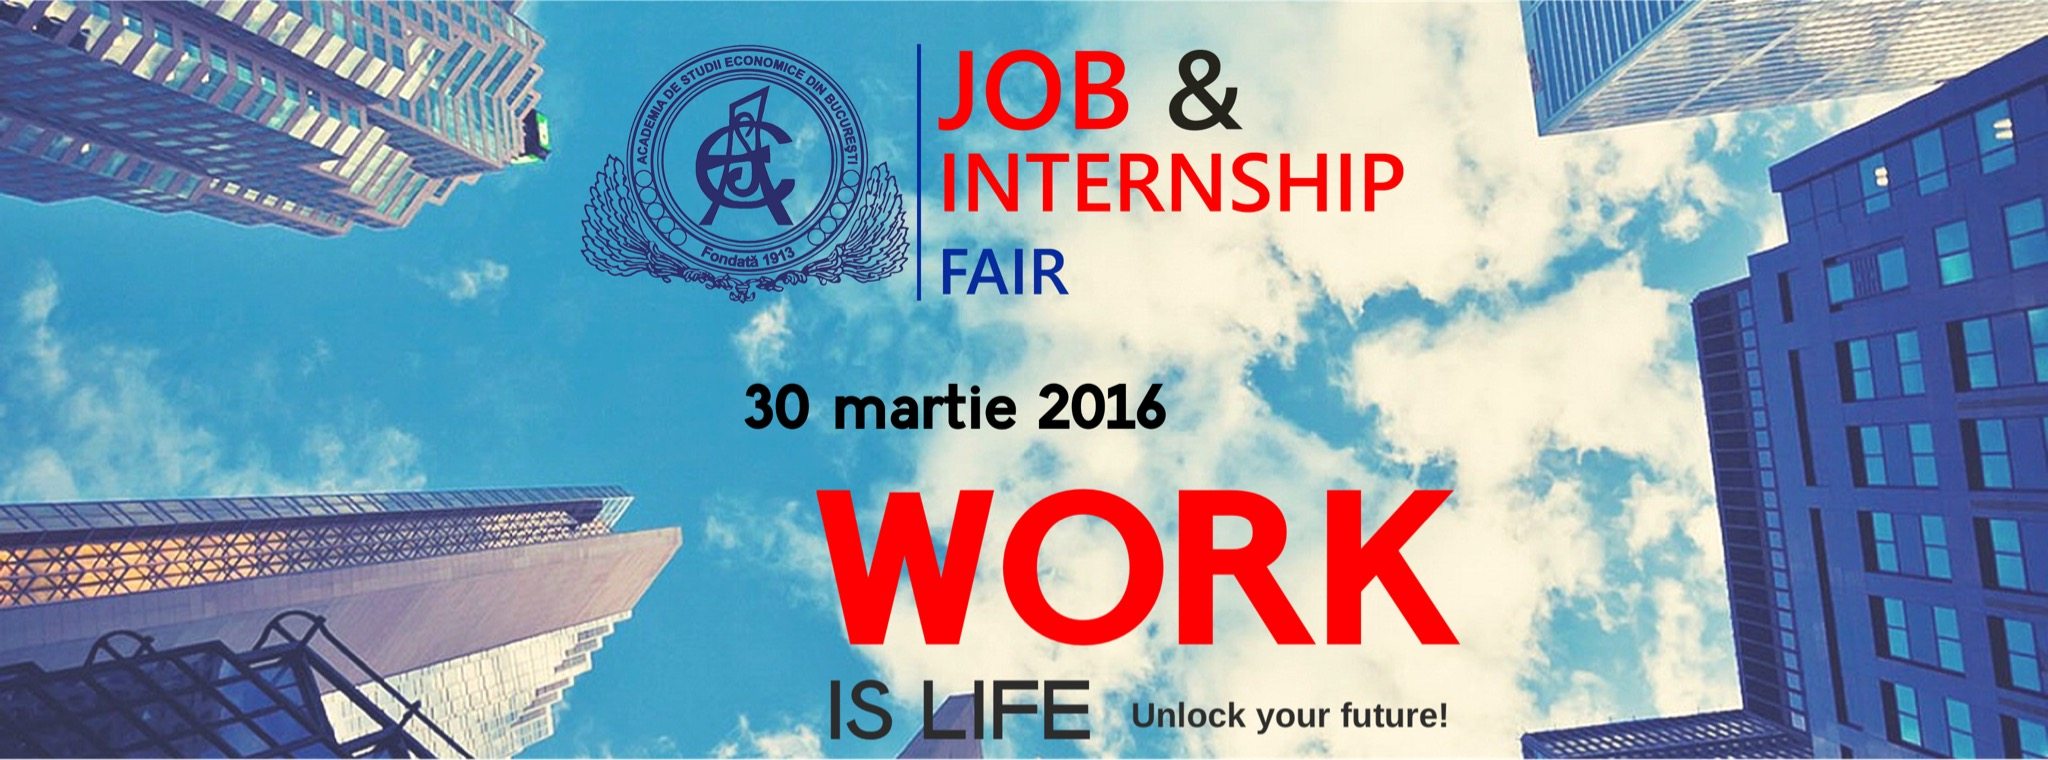 ASE Job & Internship Fair, ediția a III-a, are loc pe 30 martie